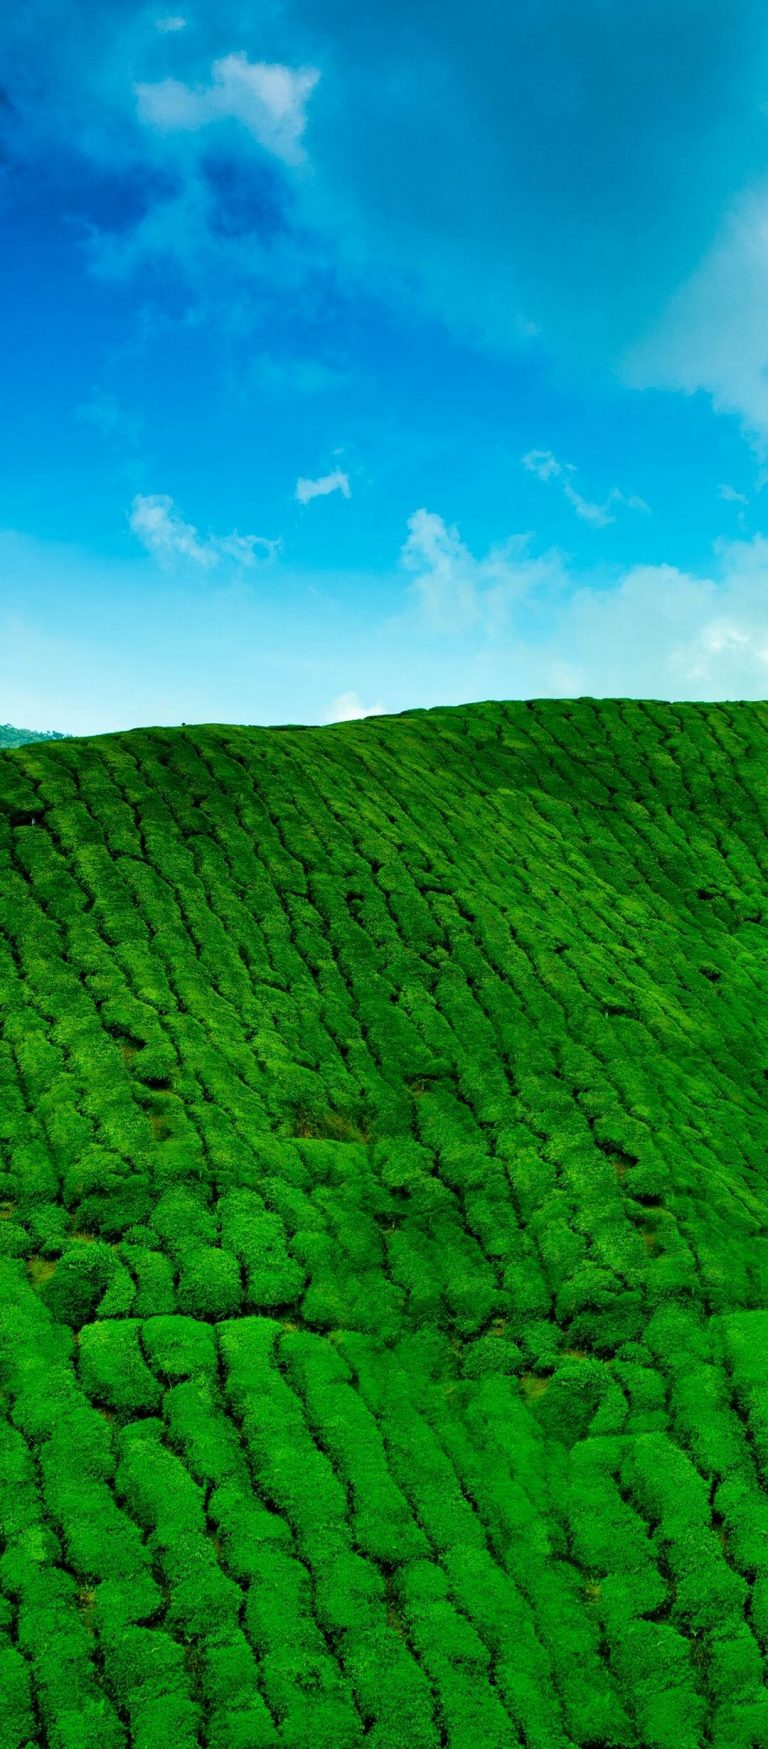 Mountains Tea Plantations Green 1080x2460 768x1749